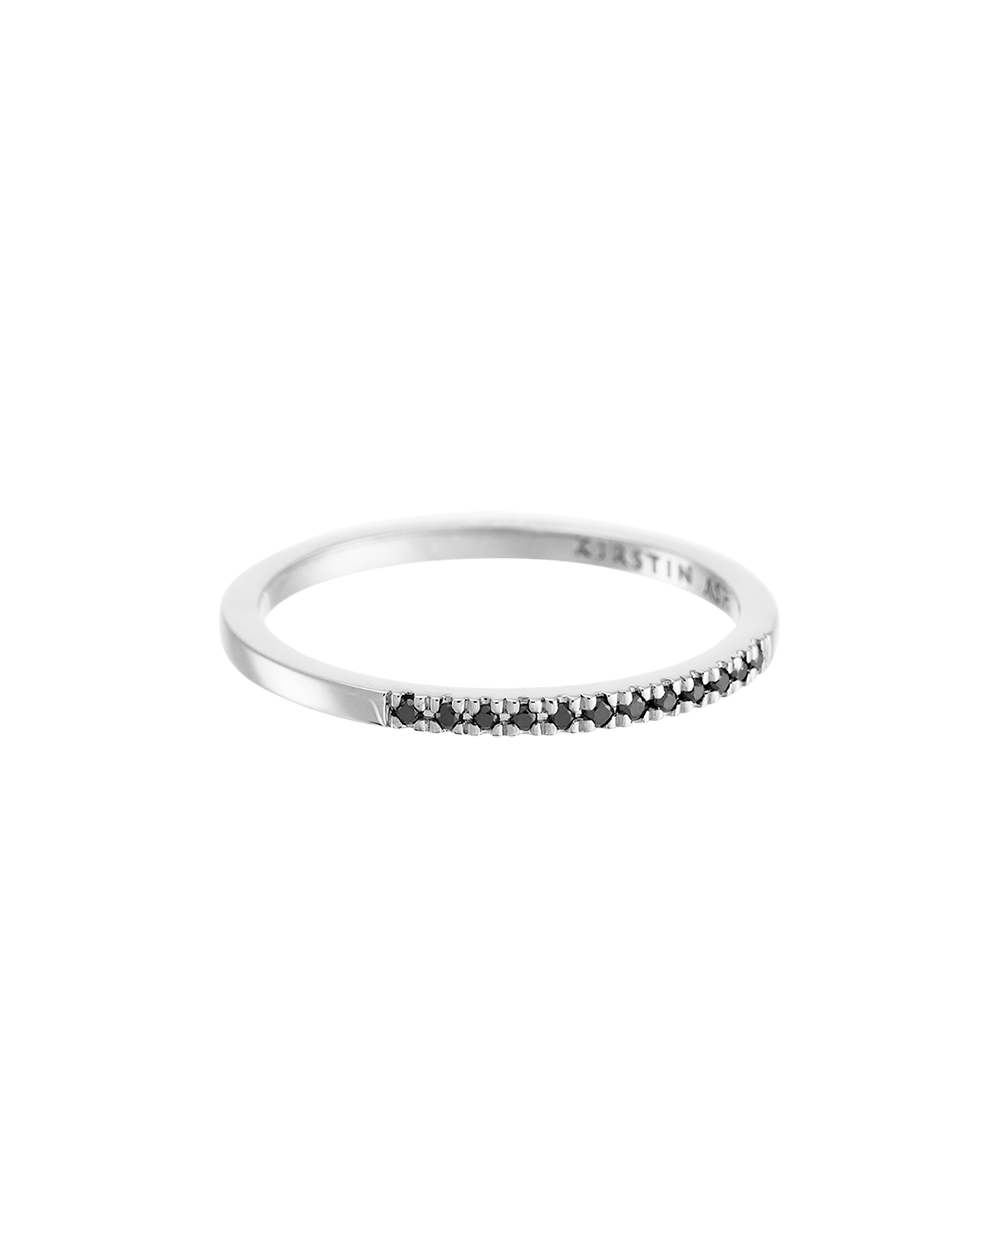 HALF BLACK DIAMOND ETERNITY RING (14K WHITE GOLD) Image 01